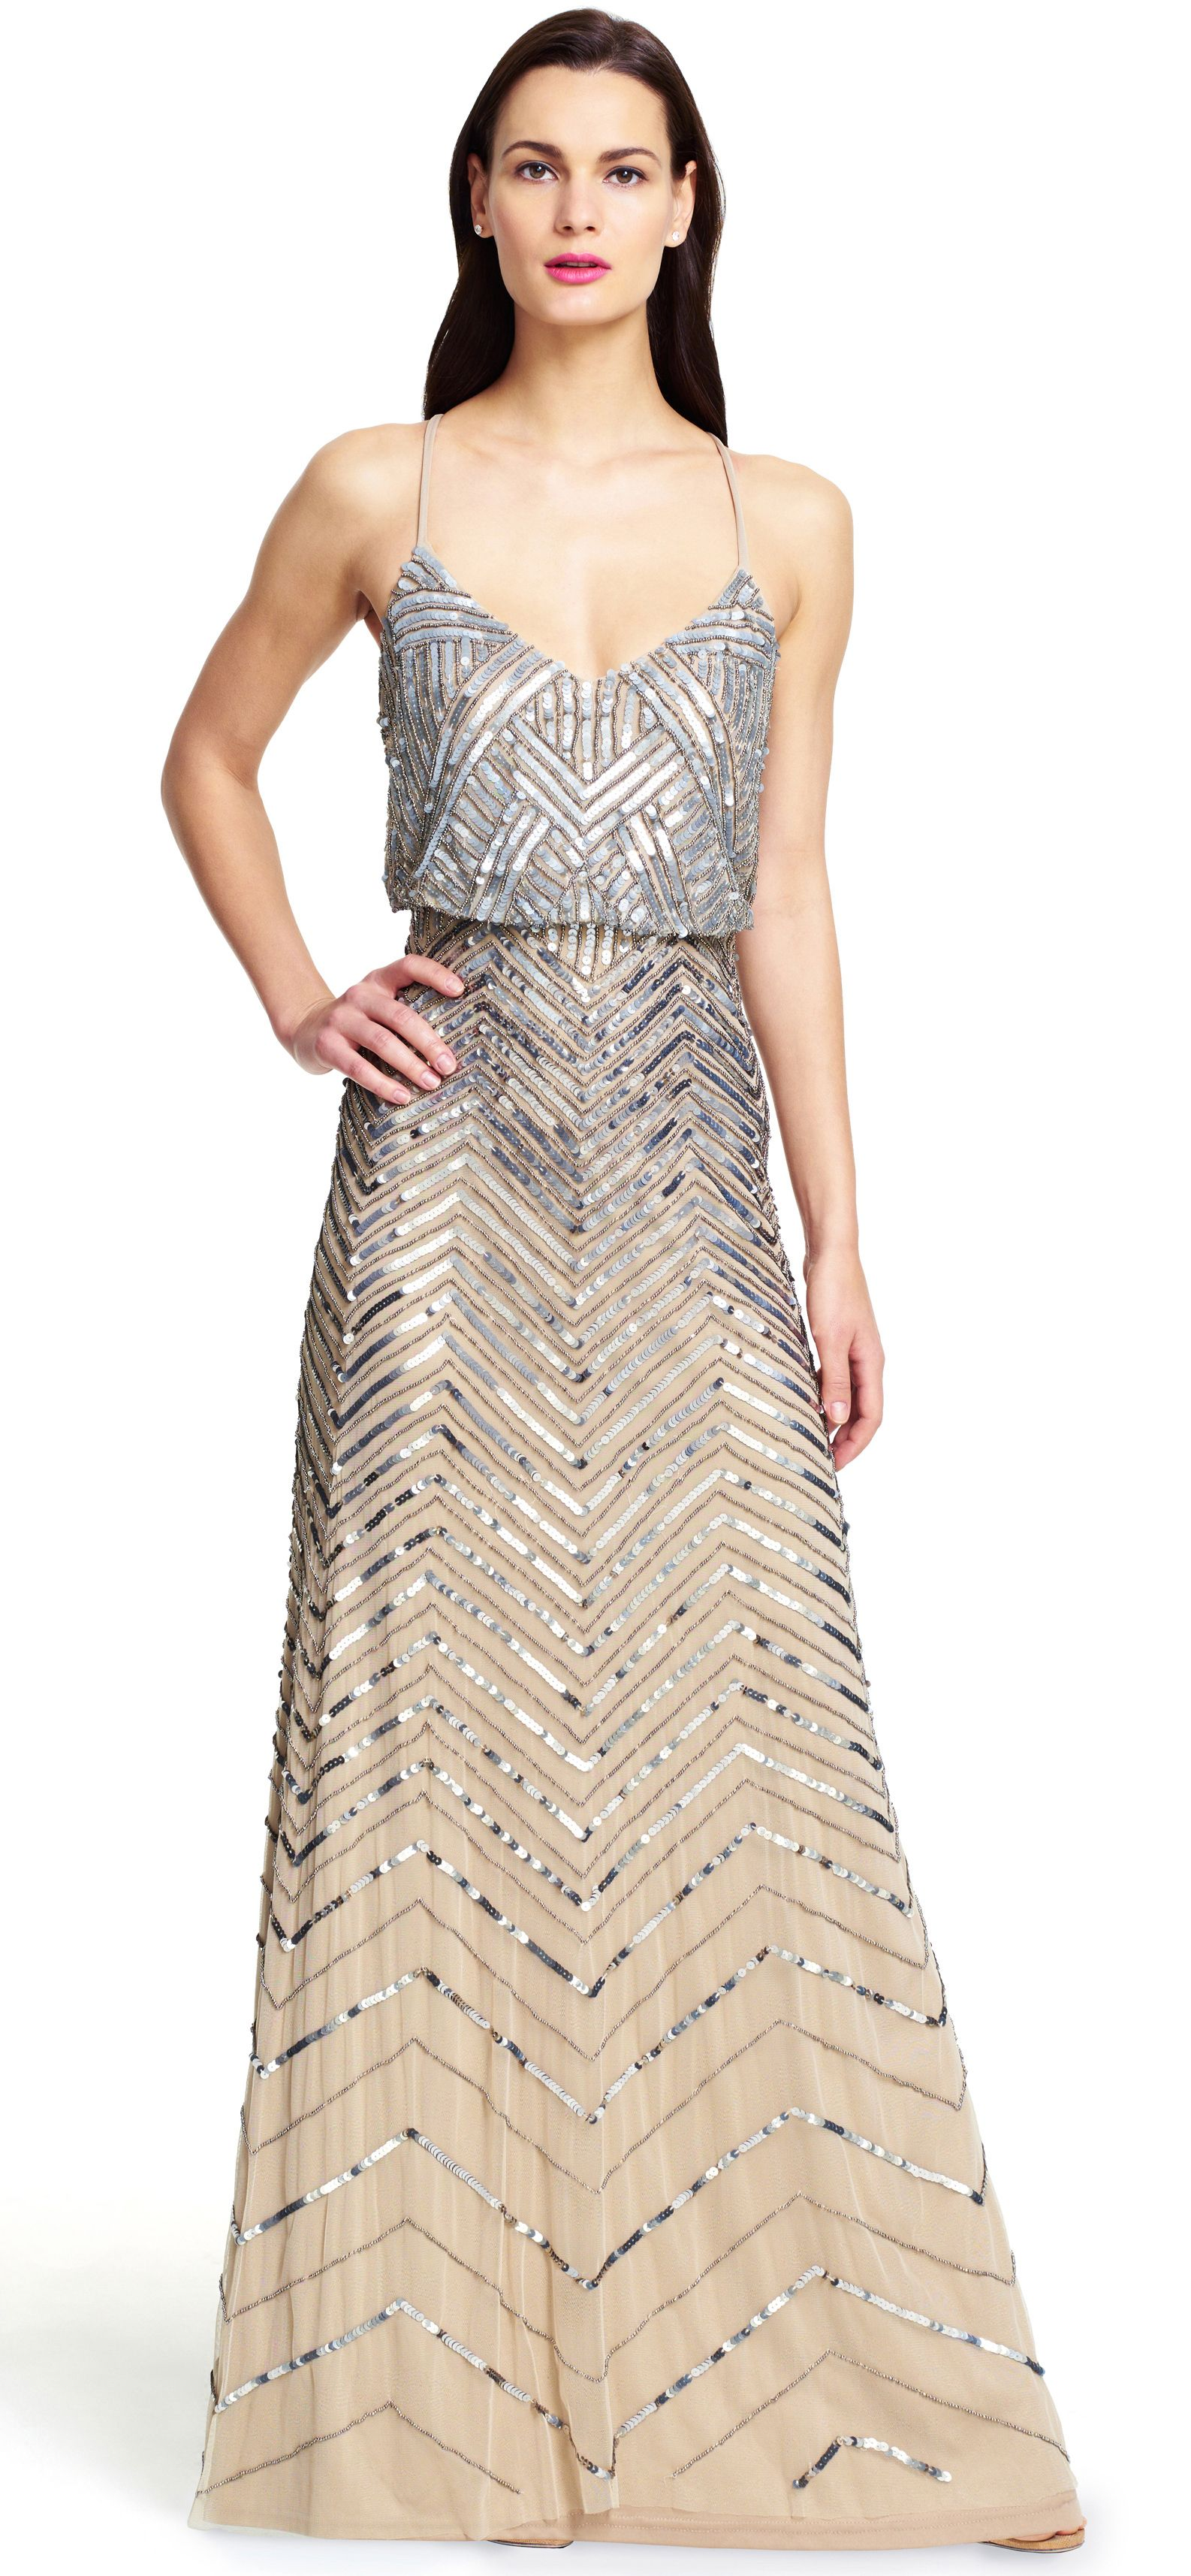 Papell cap sleeve beaded sequined gown dresses women macy s - Adrianna Papell Chevron Beaded Blouson Gown Brilliant Beads Light Up This Stunning Beaded Blouson Gown